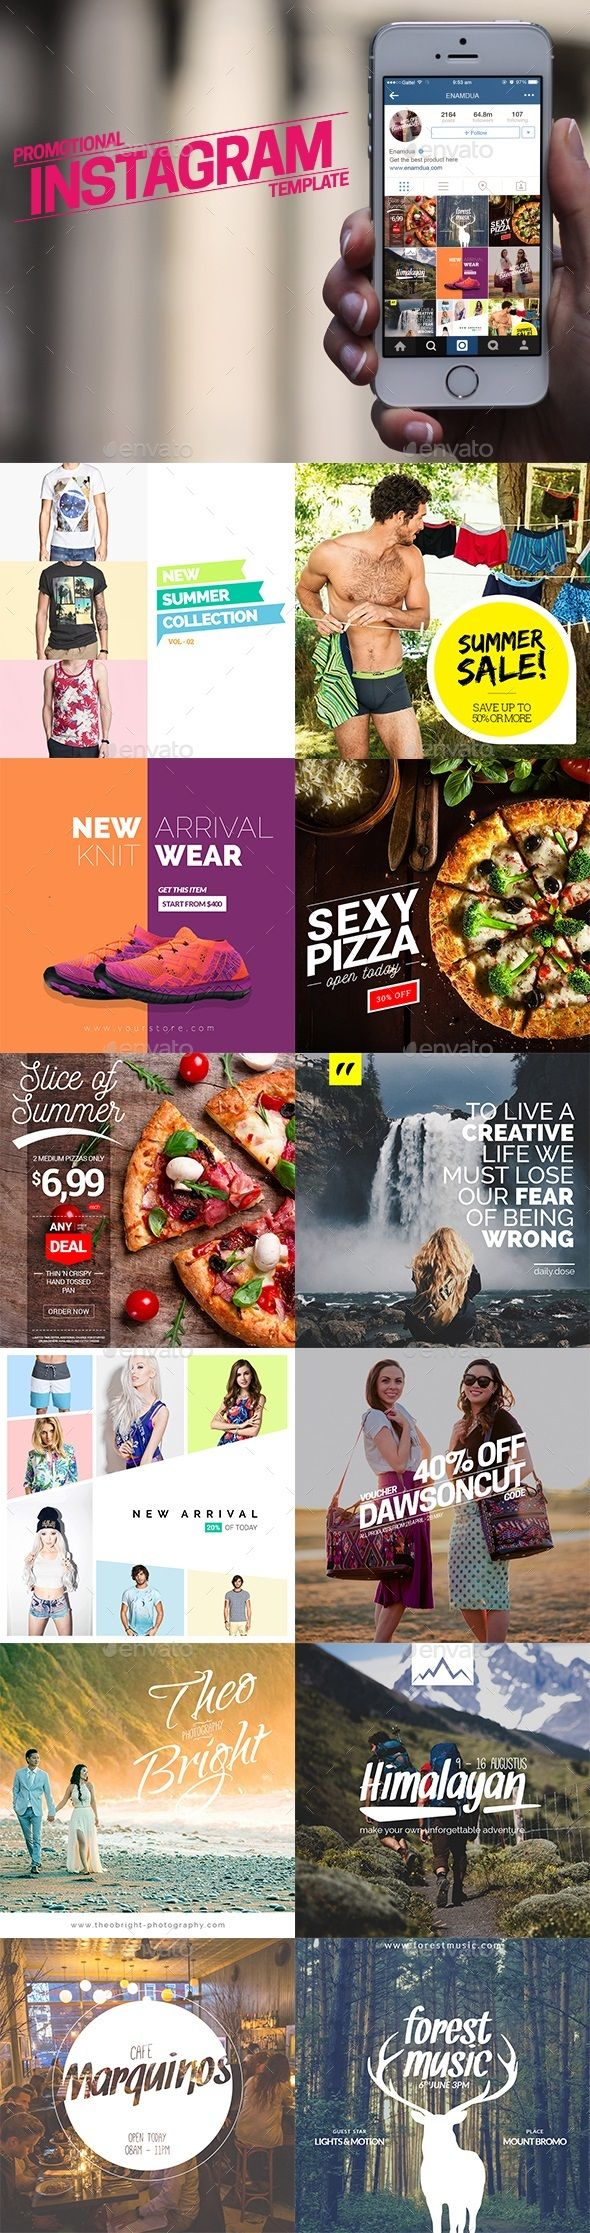 Instagram Promotional Templates